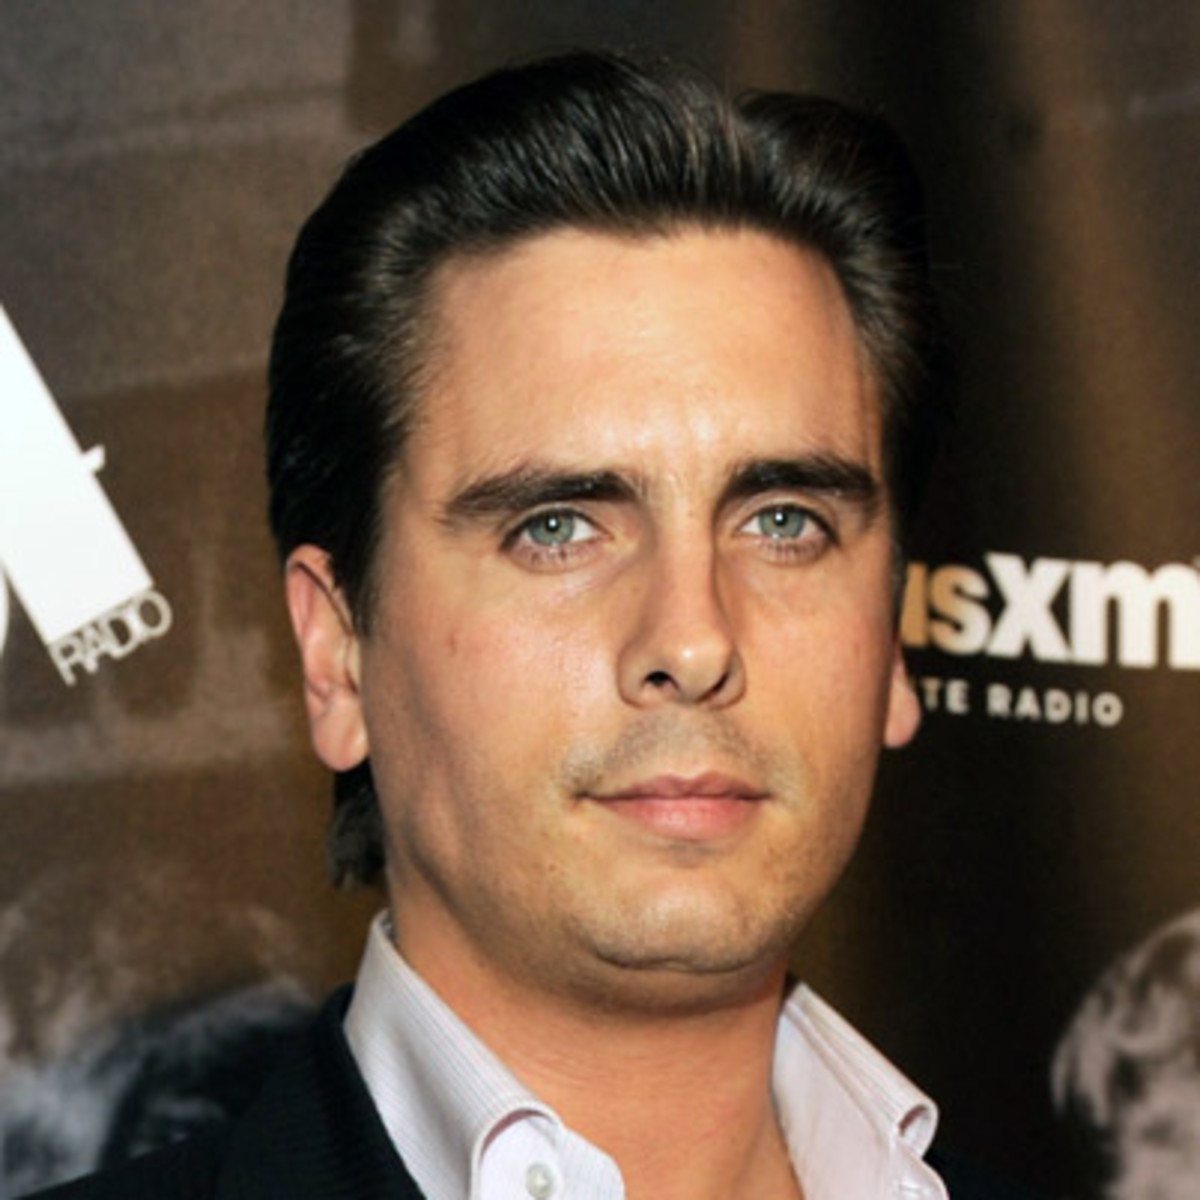 scott disick funny momentsscott disick style, scott disick кто это, scott disick insta, scott disick net worth, scott disick parents, scott disick snapchat, scott disick house, scott disick wikipedia, scott disick and kourtney, scott disick 2017, scott disick funny moments, scott disick hairstyle, scott disick vk, scott disick lord, scott disick news, scott disick 2016, scott disick bio, scott disick outfit, scott disick business, scott disick closet